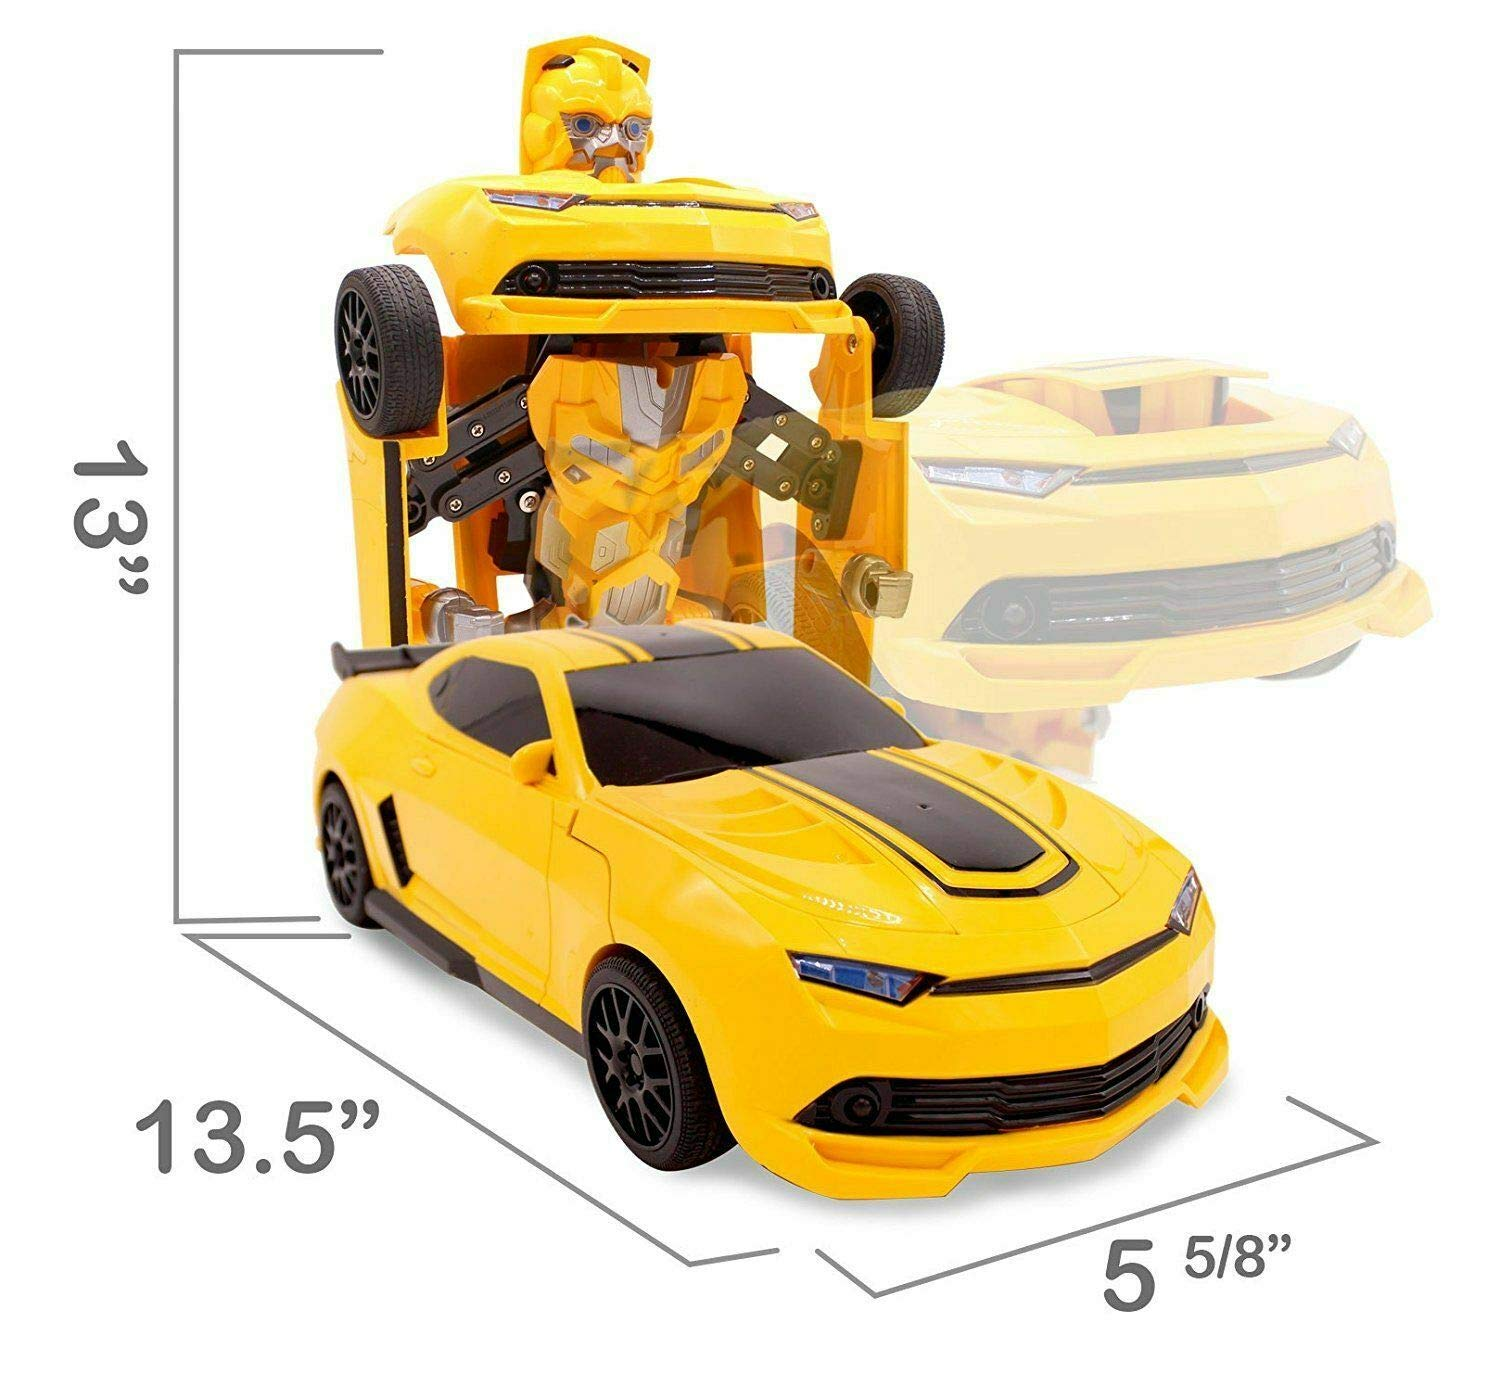 Kids RC Toy Sports Car Transforming Robot Remote Control with One Button Transformation, Realistic Engine Sounds, 360 Speed Drifting, Sword and Shield Included Toys For Boys 1:14 Scale Yellow by Transformania Toys (Image #5)